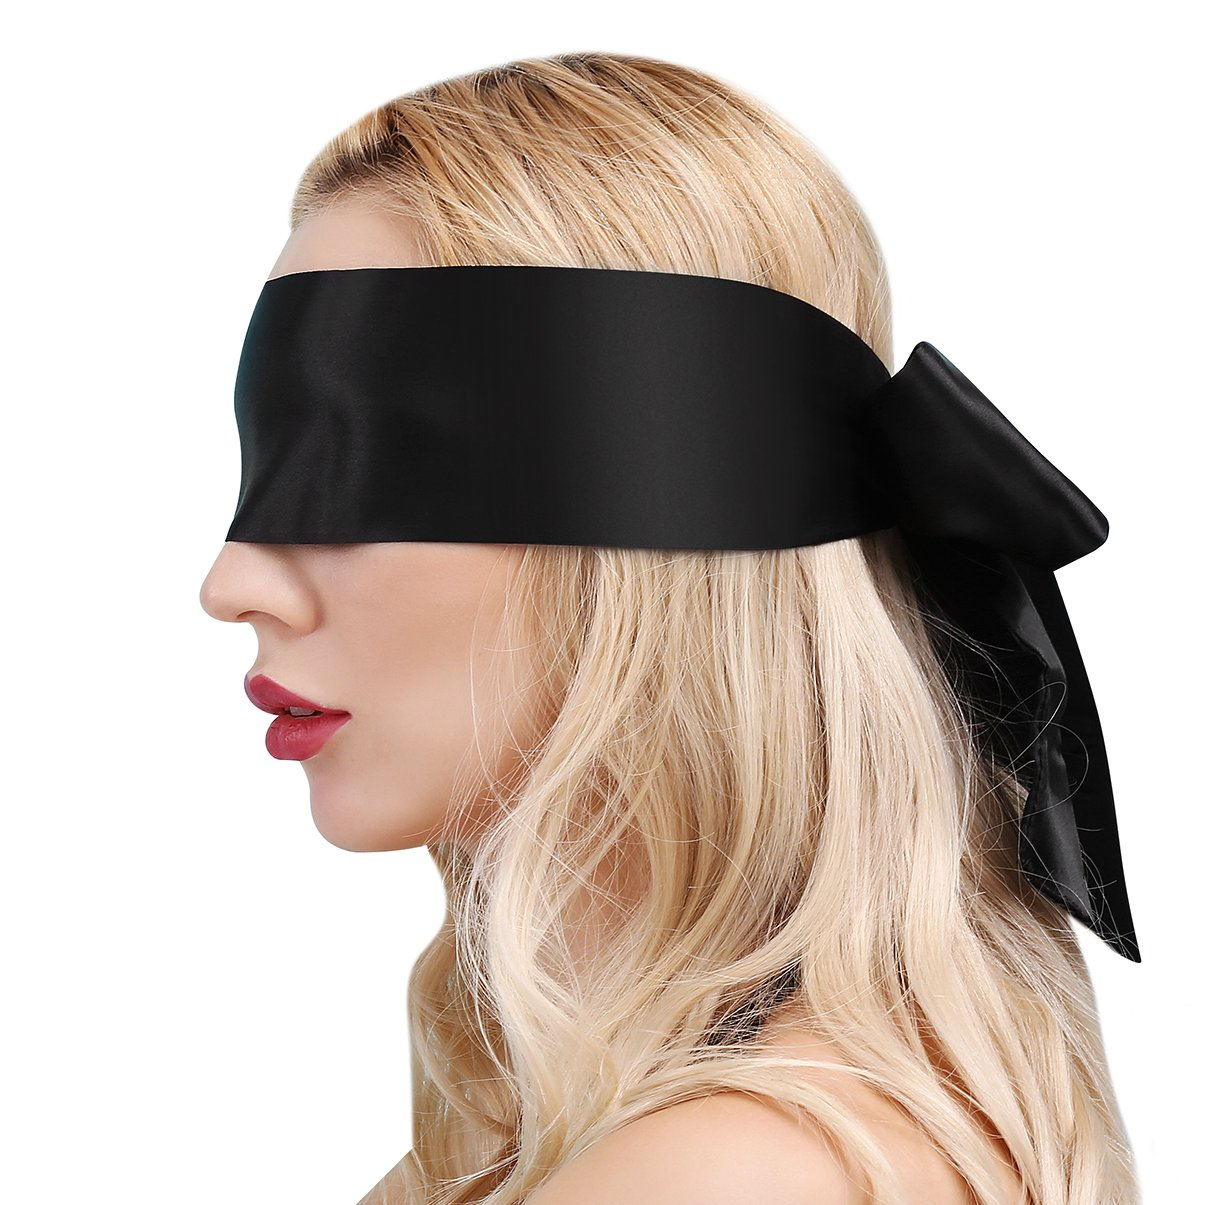 Utimi SM Blindfold Fetish Eye Mask SM Bondage Restraints for Couples Flirting